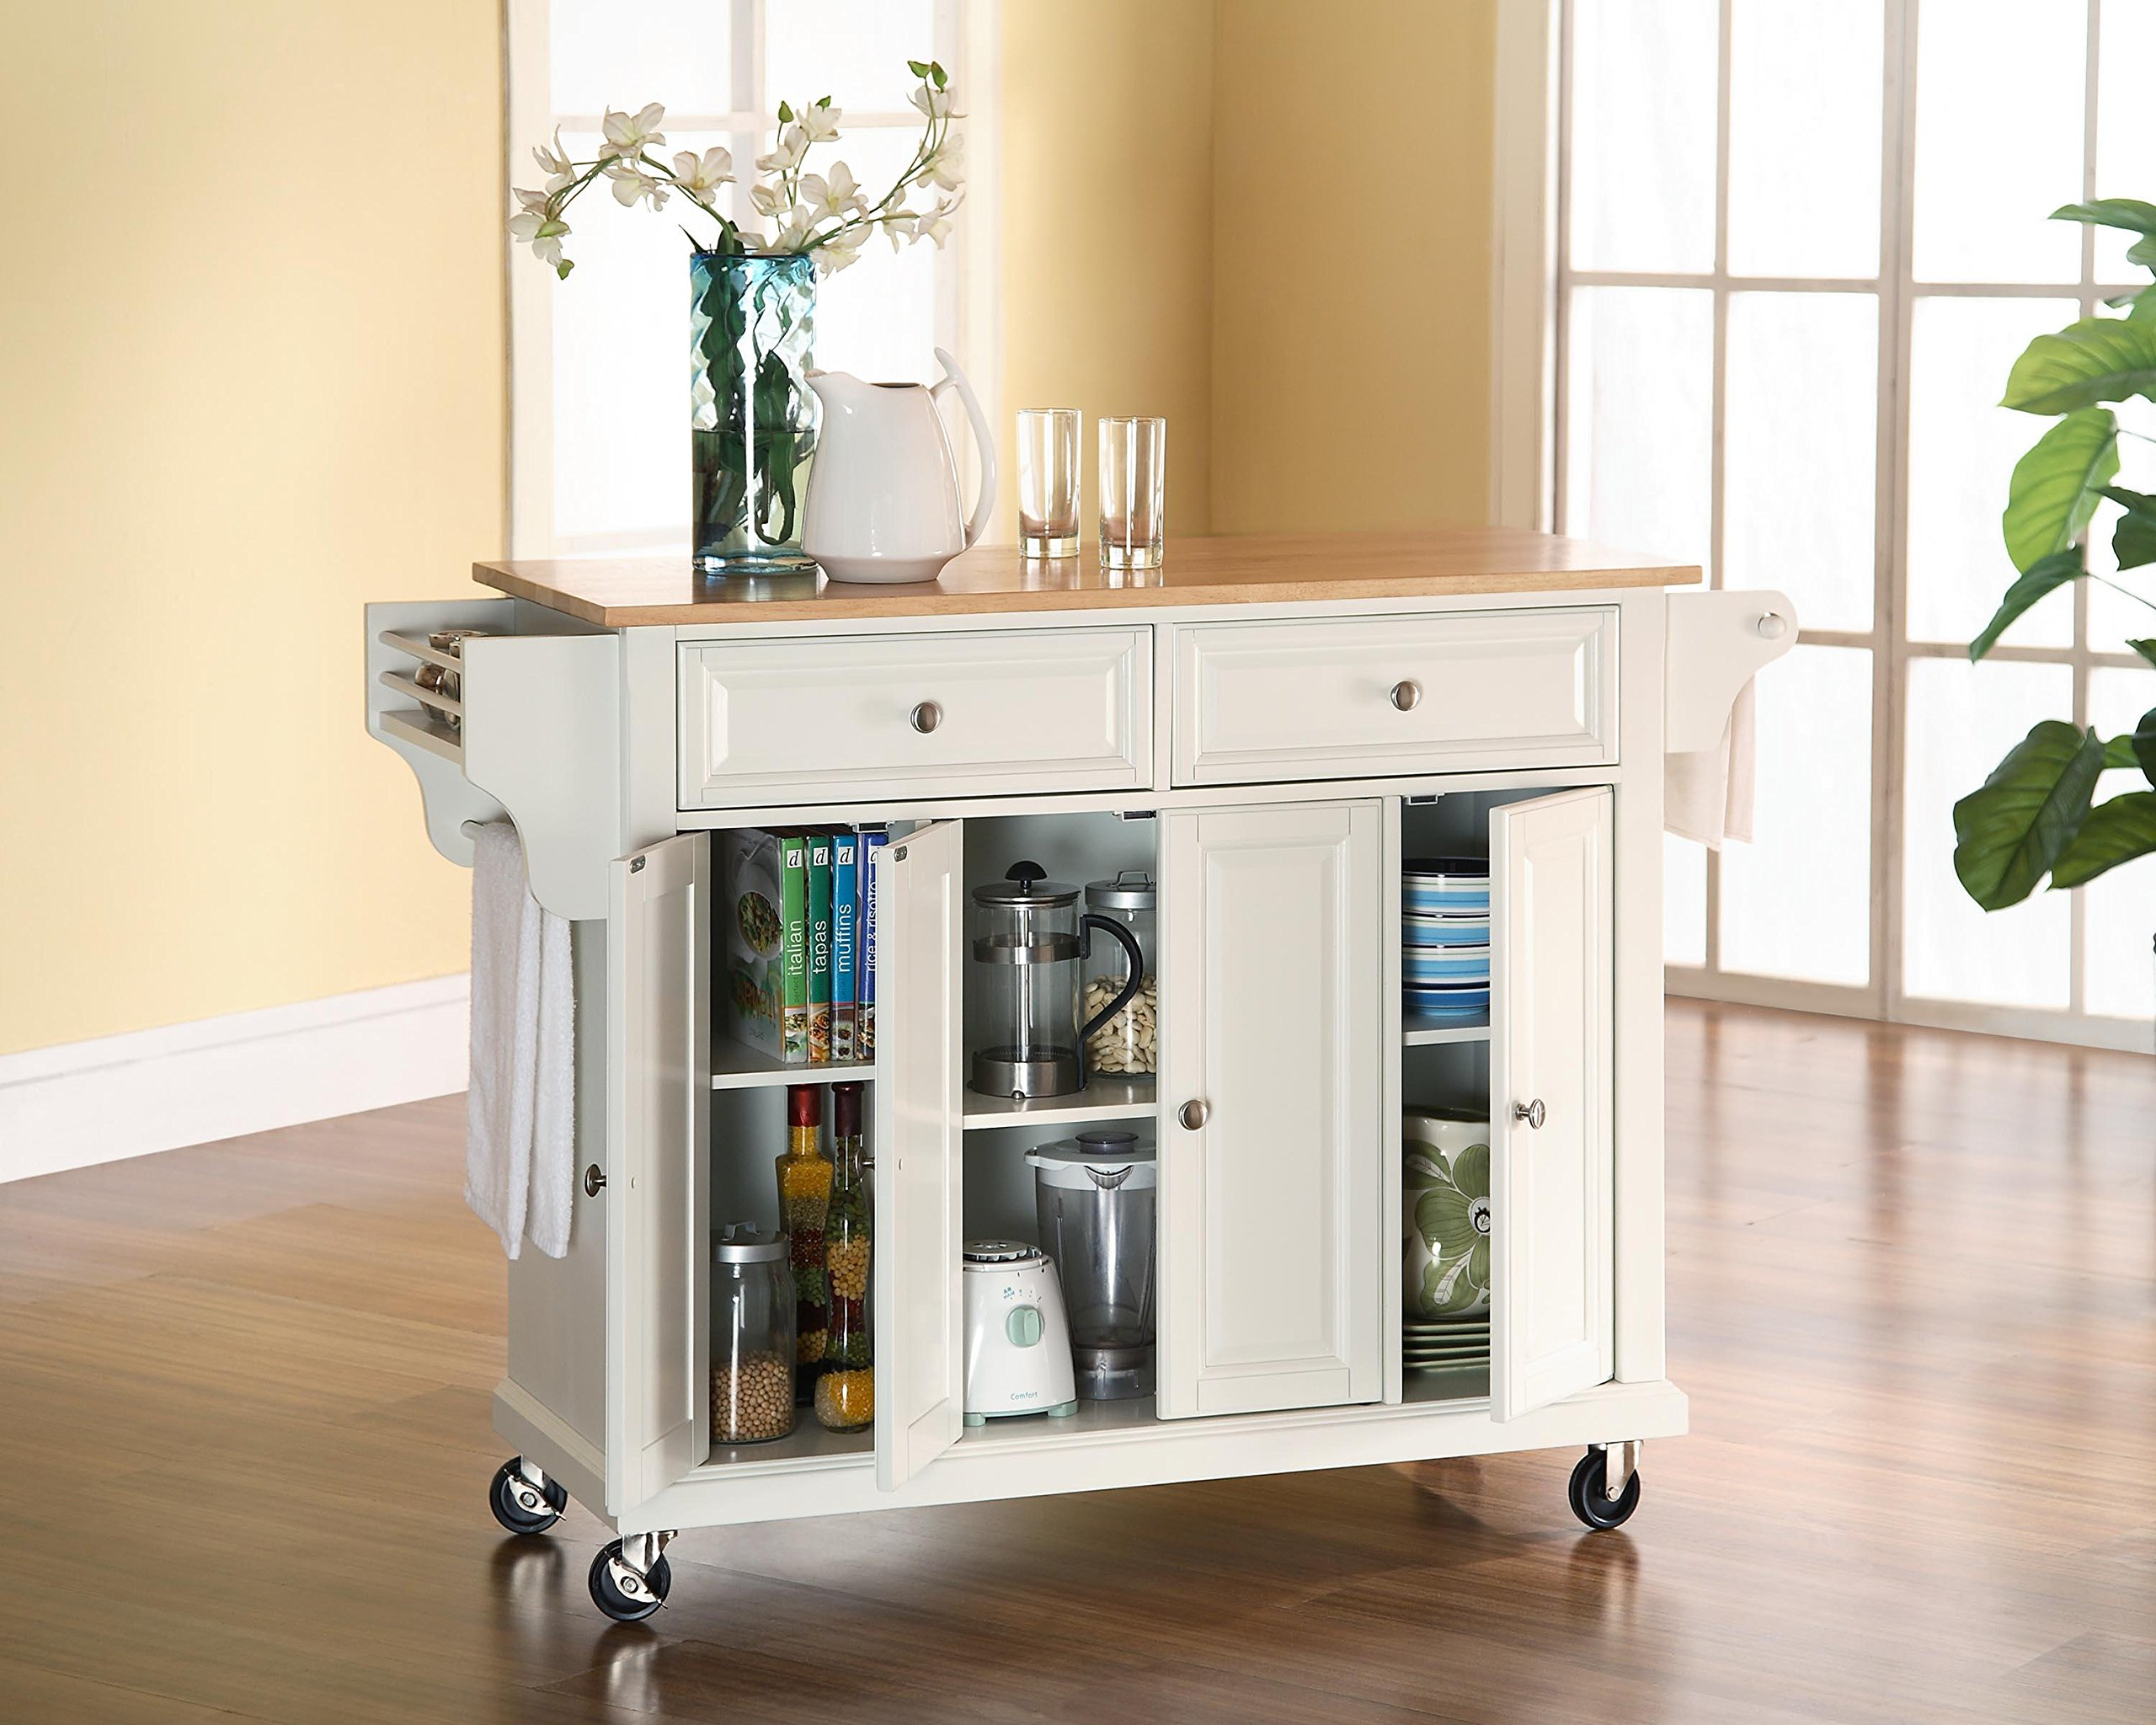 Crosley Furniture Rolling Kitchen Island with Natural Wood Top - White by Crosley Furniture (Image #5)